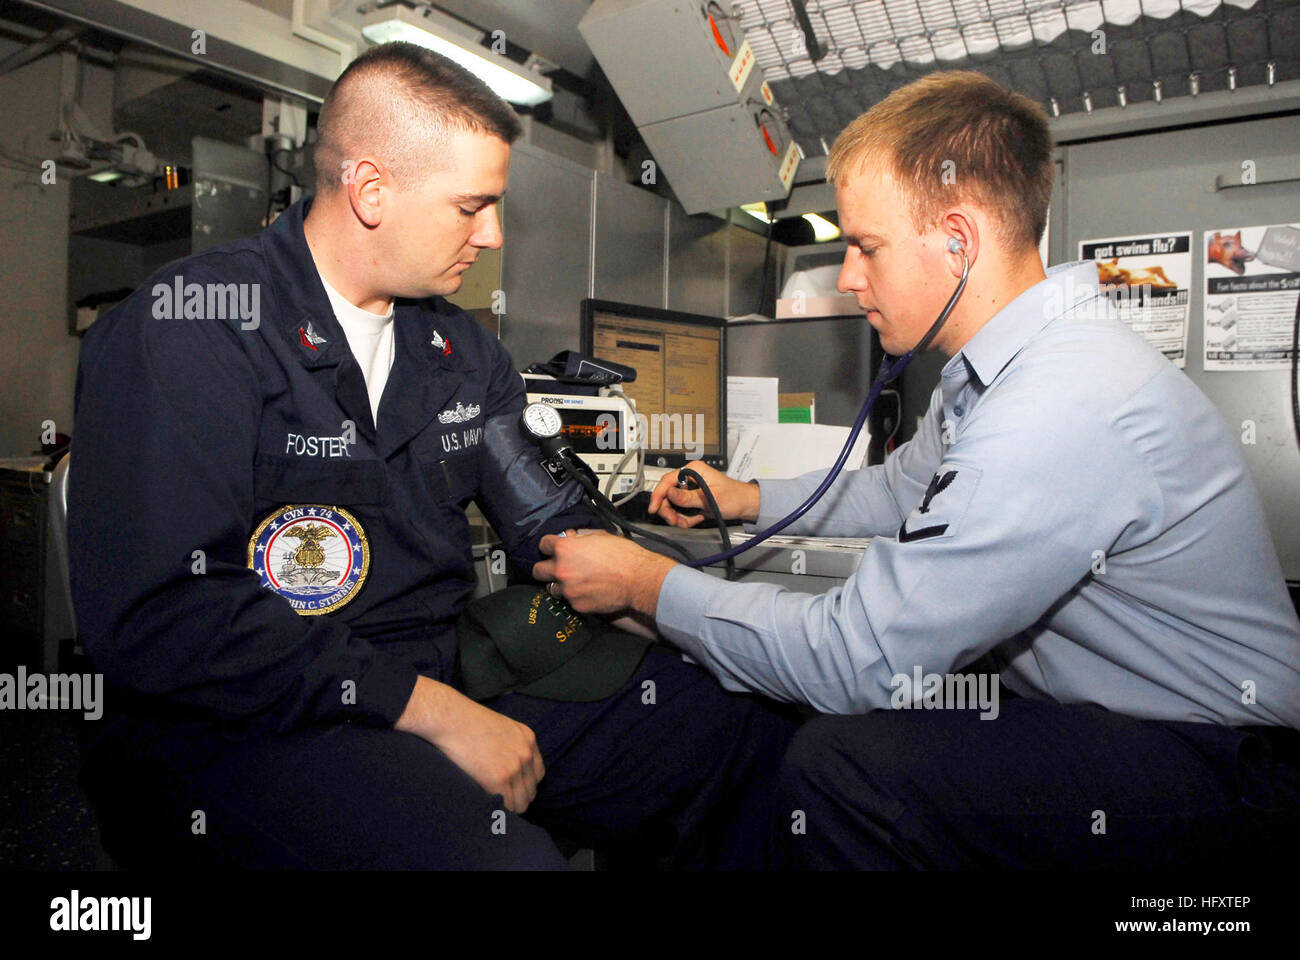 091002-N-0096C-018  BREMERTON, Wash. (Oct. 2, 2009) Hospital Corpsman 3rd Class Anthony Fadich, right, from Wenatachee,Stock Photo